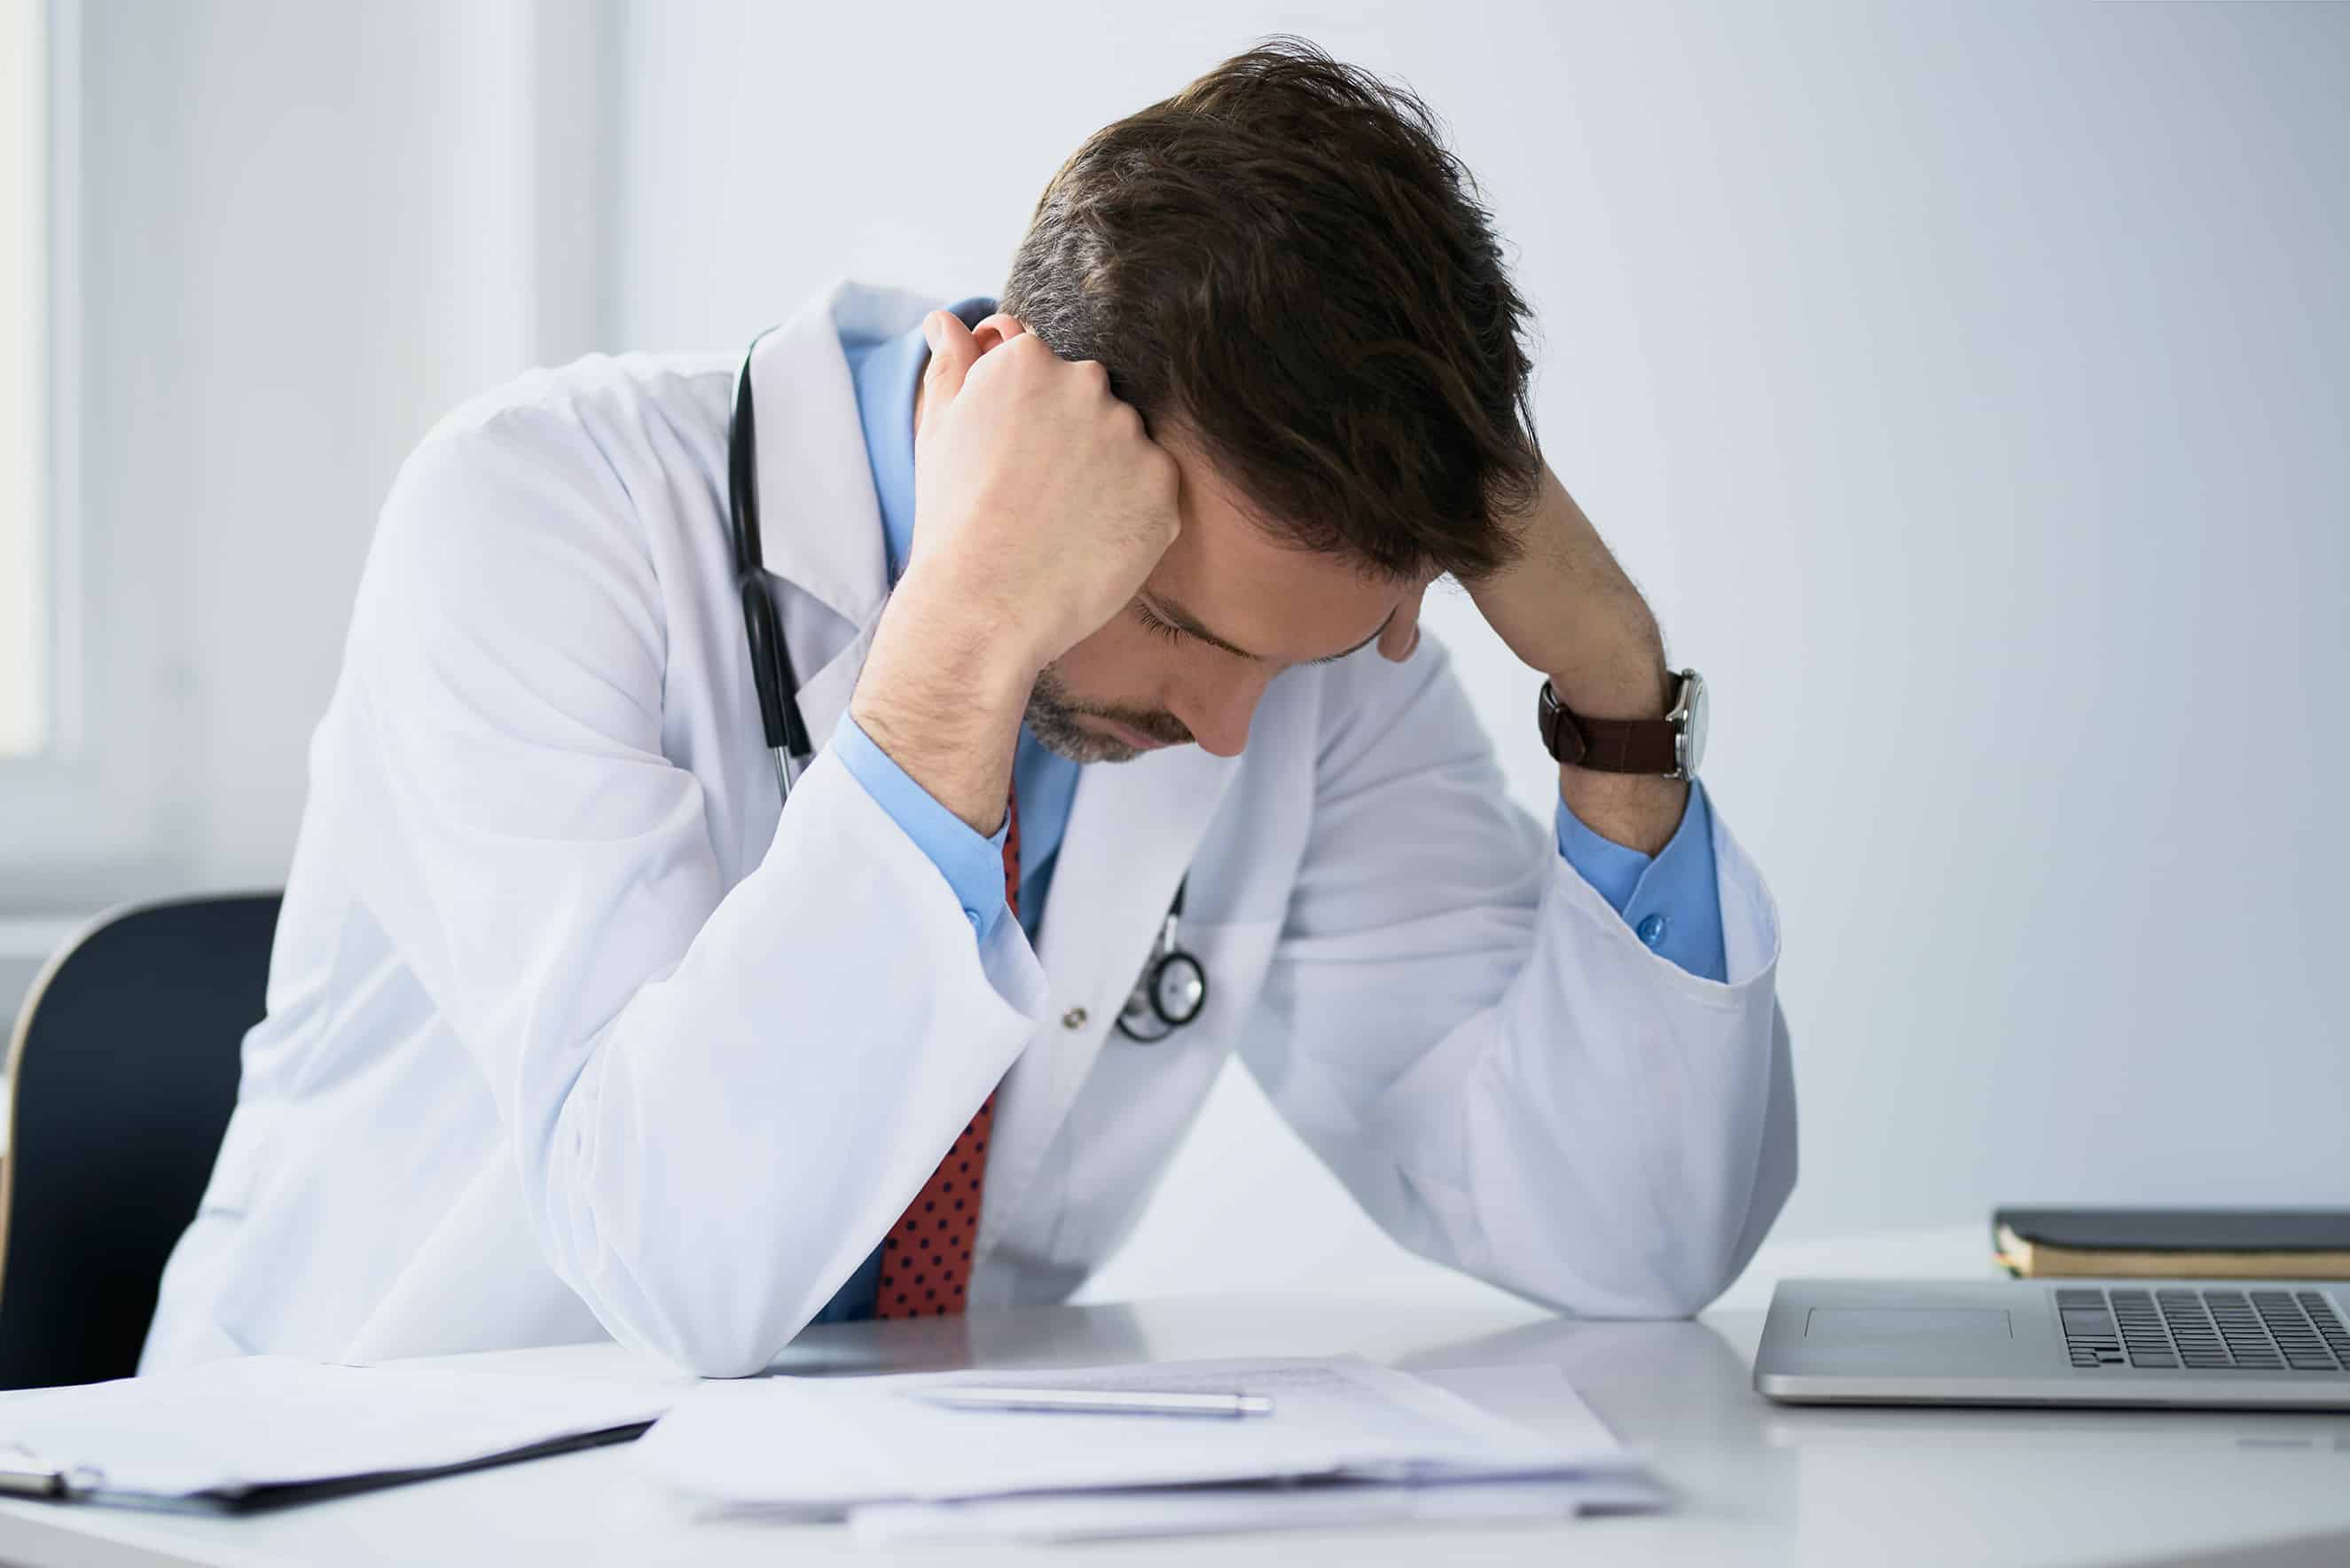 Frustrated Doctor reduced